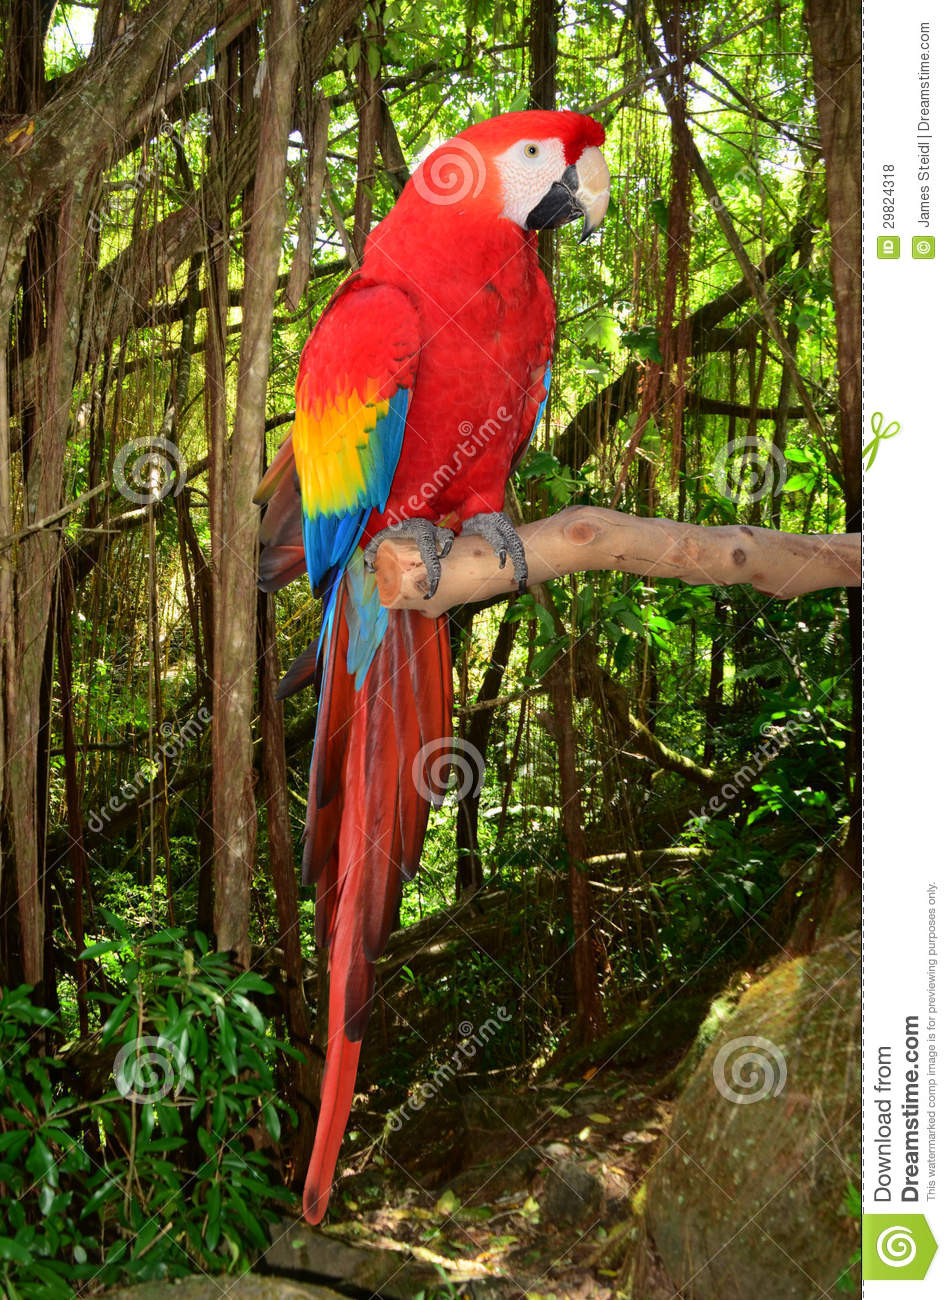 photo of a macaw parrot perched in a branch in the tropical jungle.